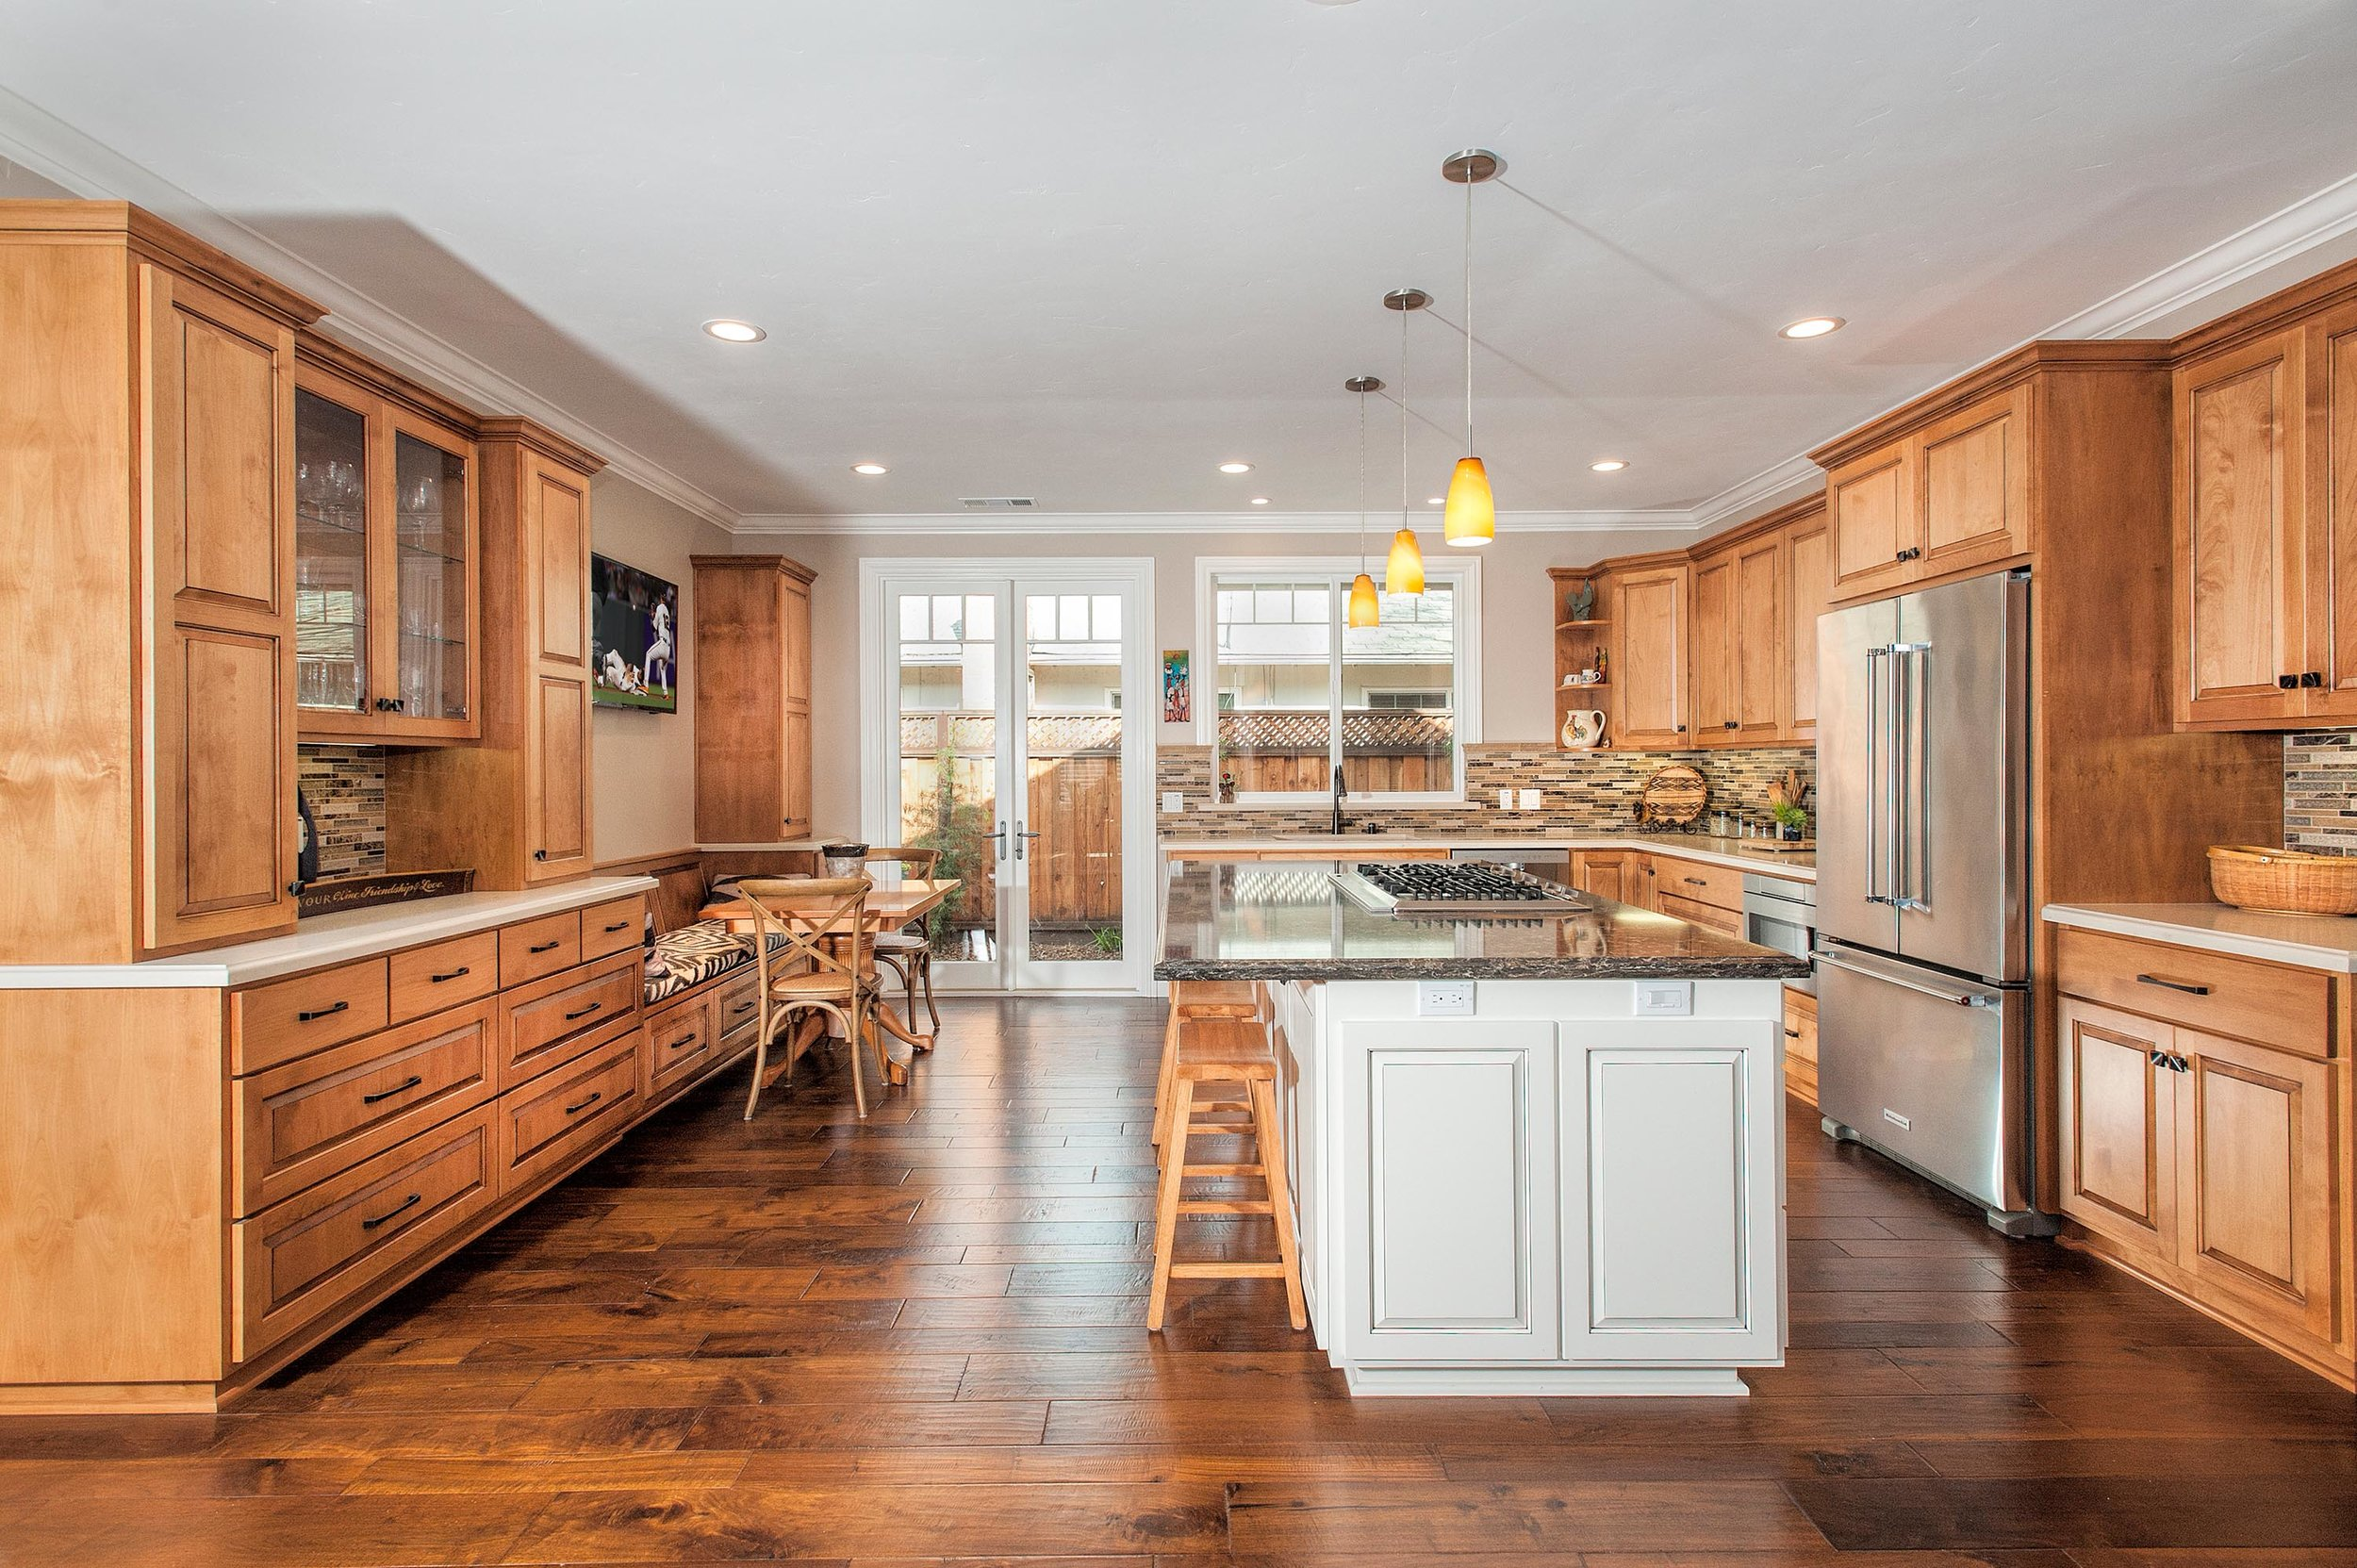 Elegant kitchen with wood look tile flooring and island in the center